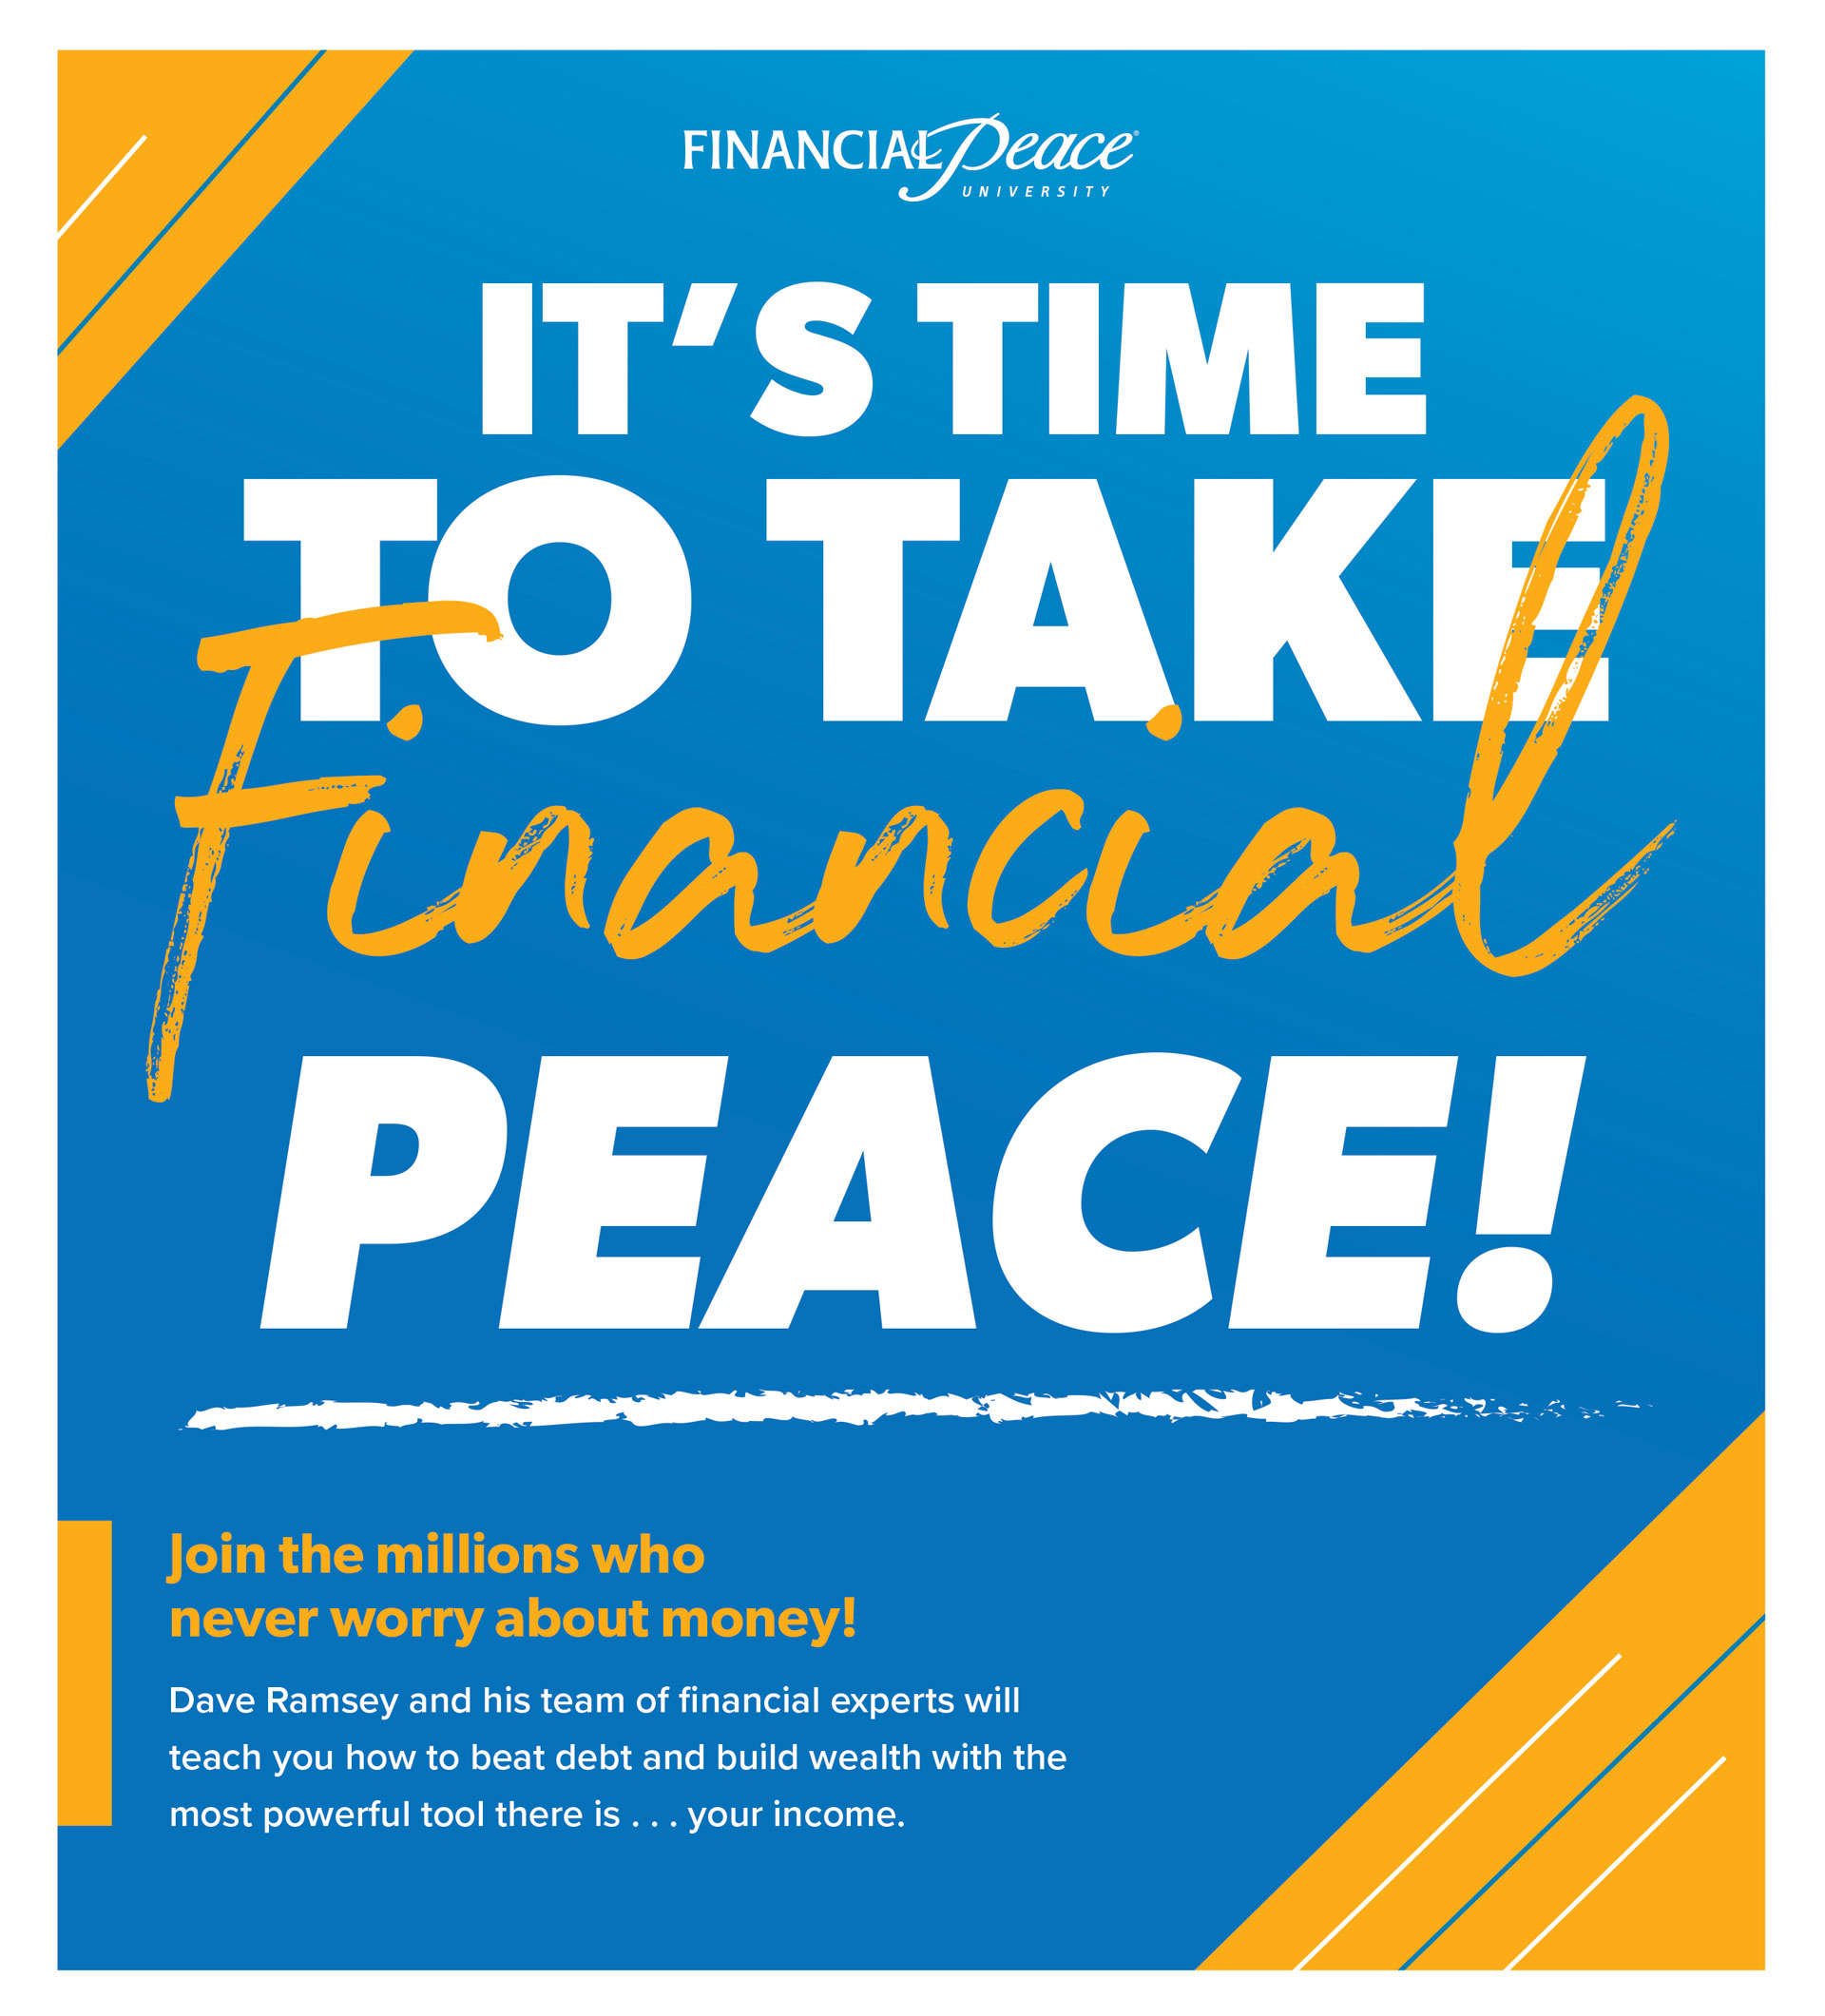 Financial Peace University Journey Community Church